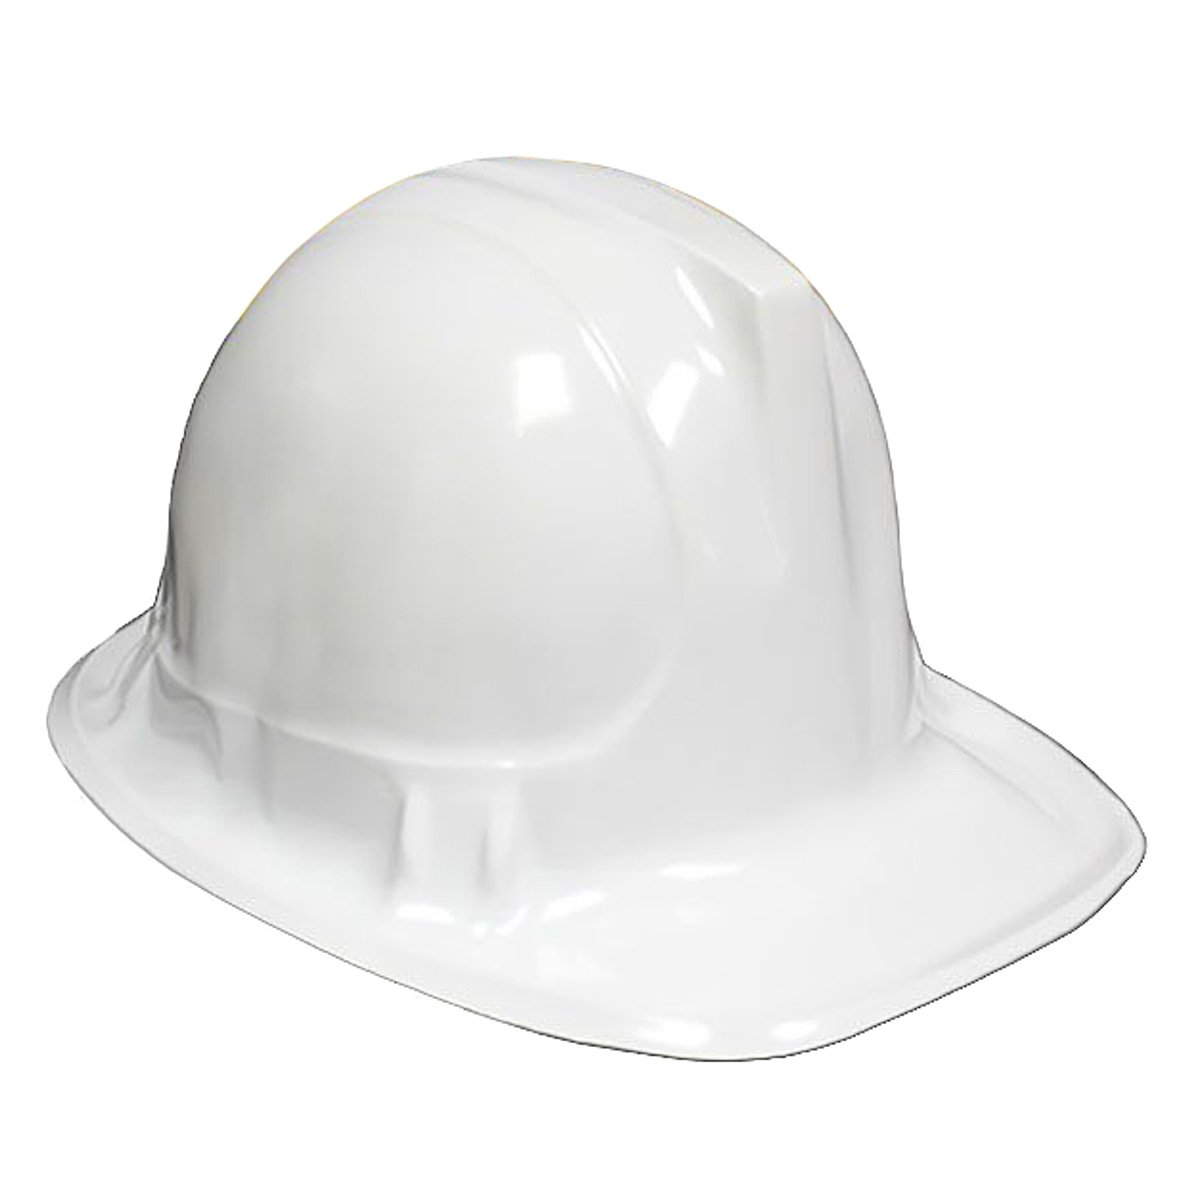 WHITE Kid's Plastic Miner Construction Hard Hats Set Of 12